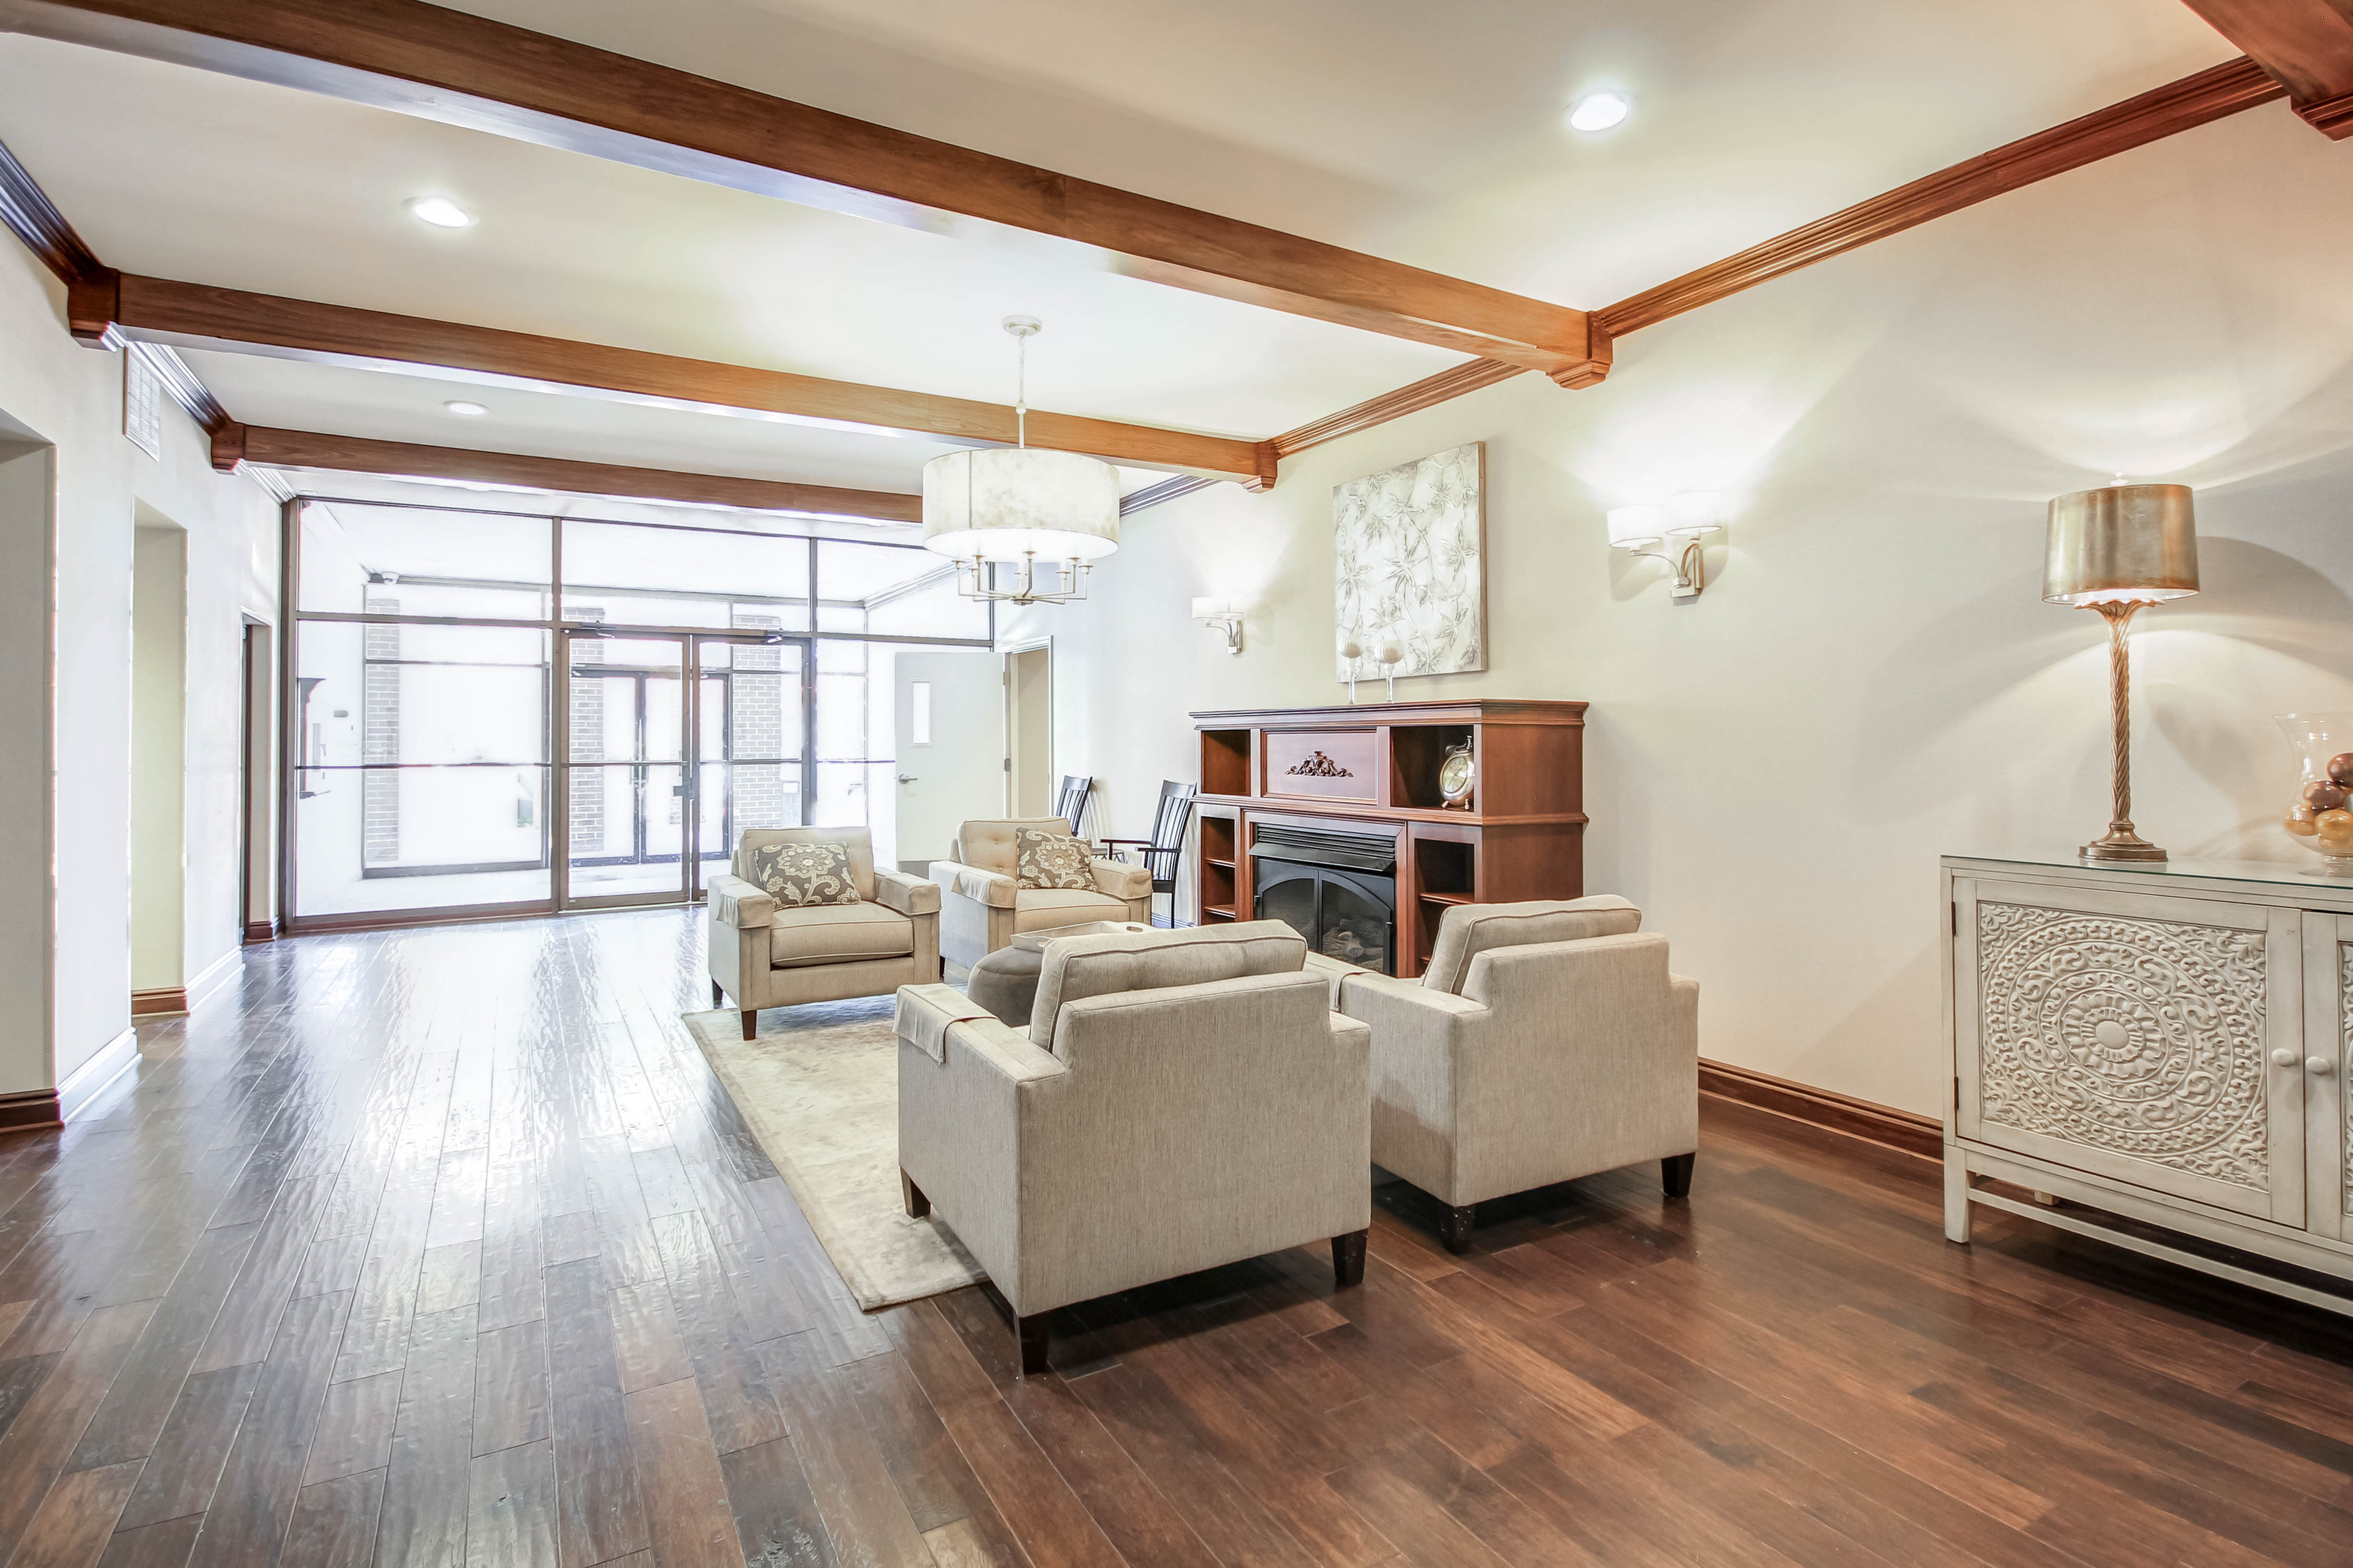 Image of Newly Renovated Lobby and Hallways for Grandview Pointe Apartments